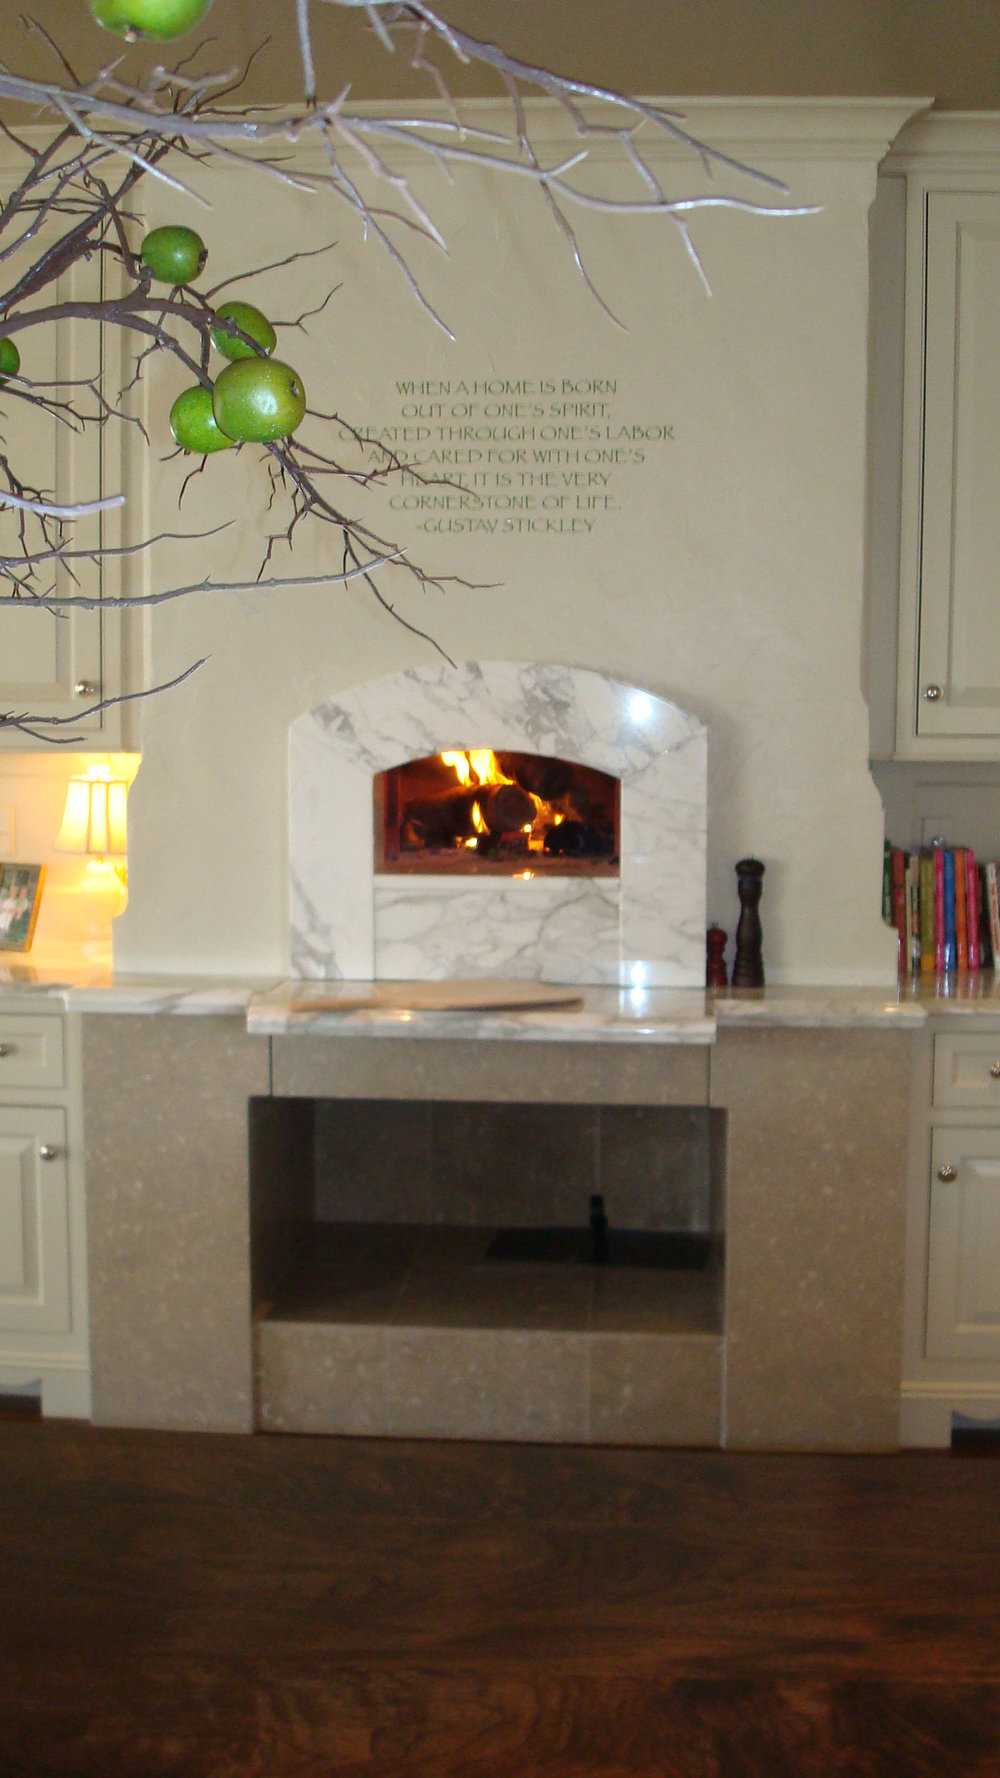 Renovation-colonial-pizza-oven-custom-old-greenwich-ct-interior-w.jpg